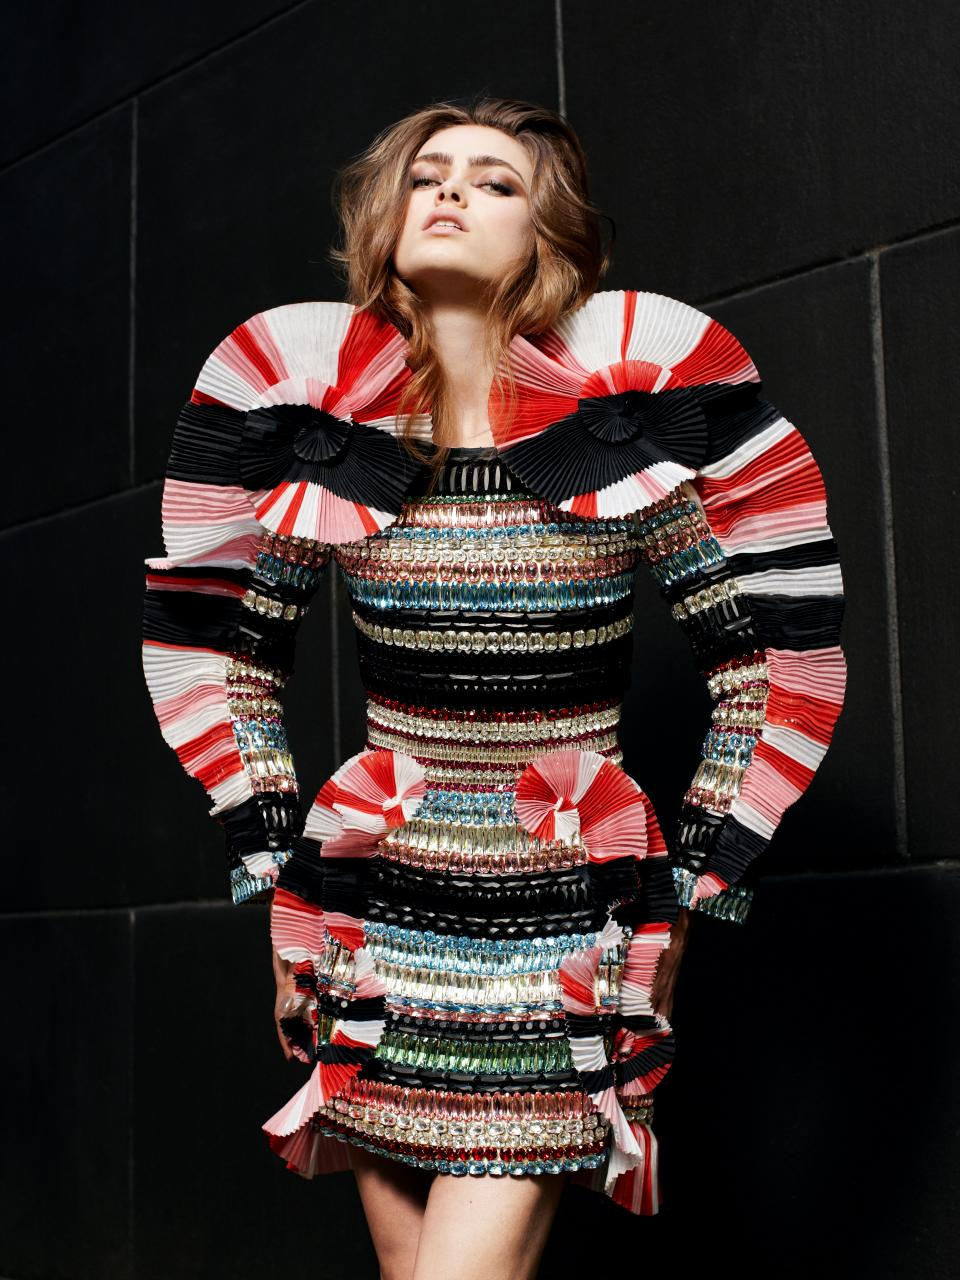 Barrie Hullegie  published in  Glamcult , December 2010 Viktor&Rolf,  Shalom  ready-to-wear collection, spring 2009 3D sculptural dress with textured stripes embroidered with Swarovski crystals © Barrie Hullegie